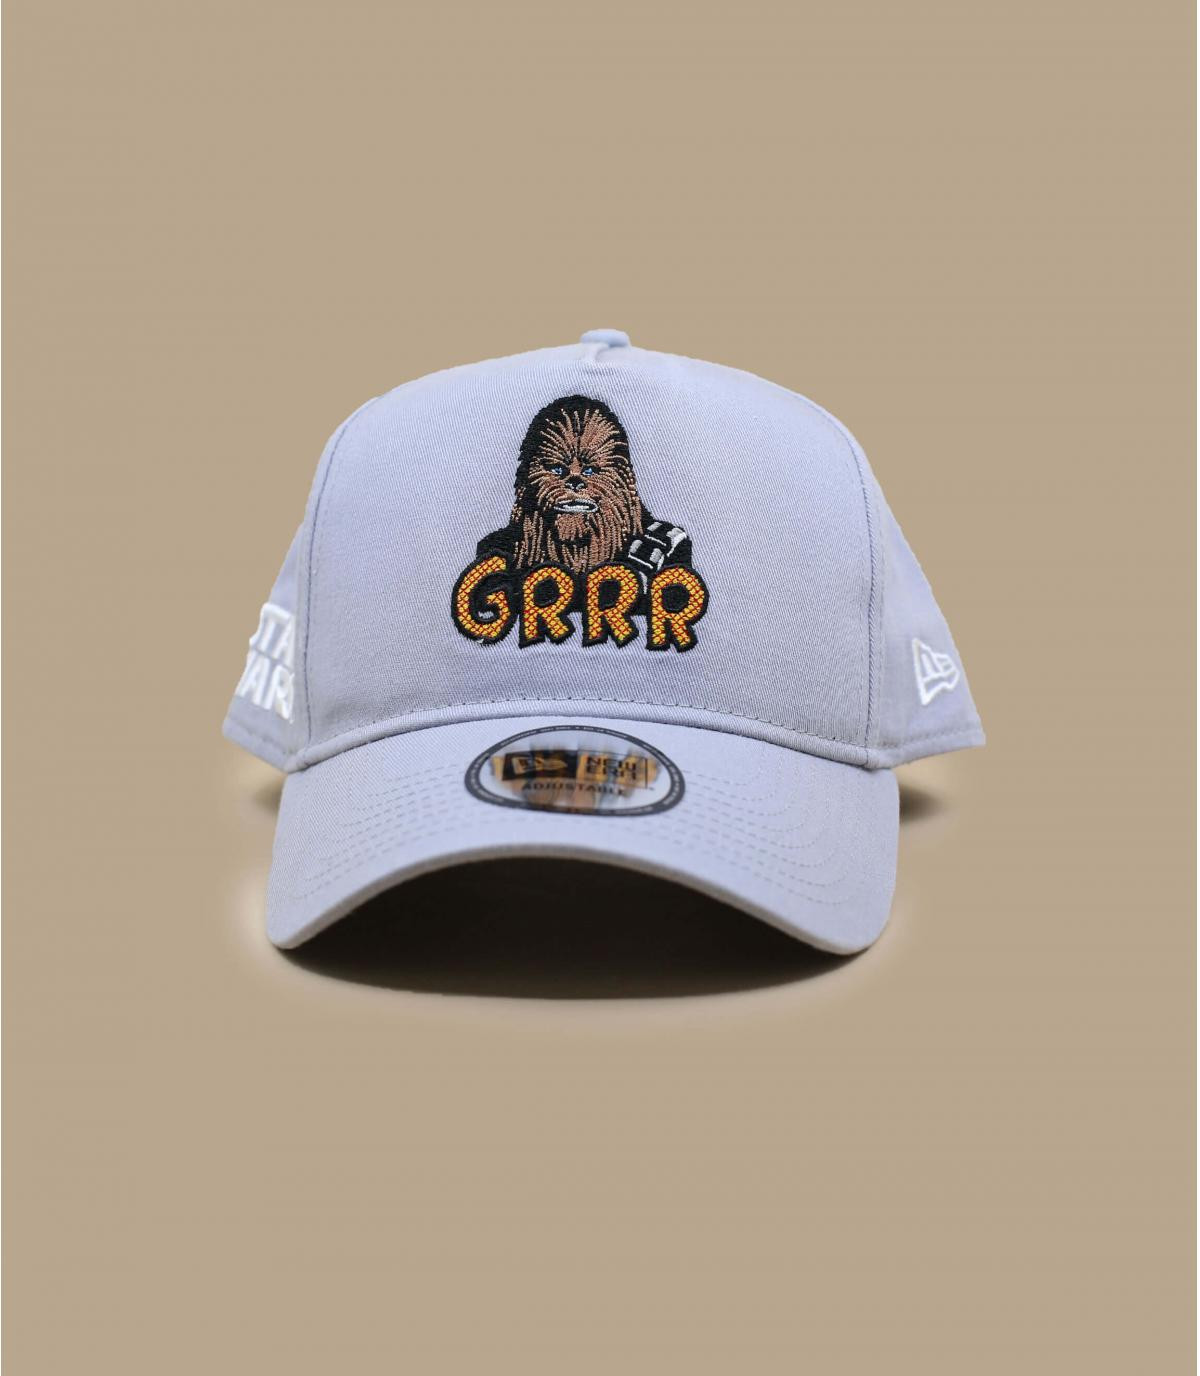 Détails Casquette Star Wars Chubacca 940 A Frame gray - image 2